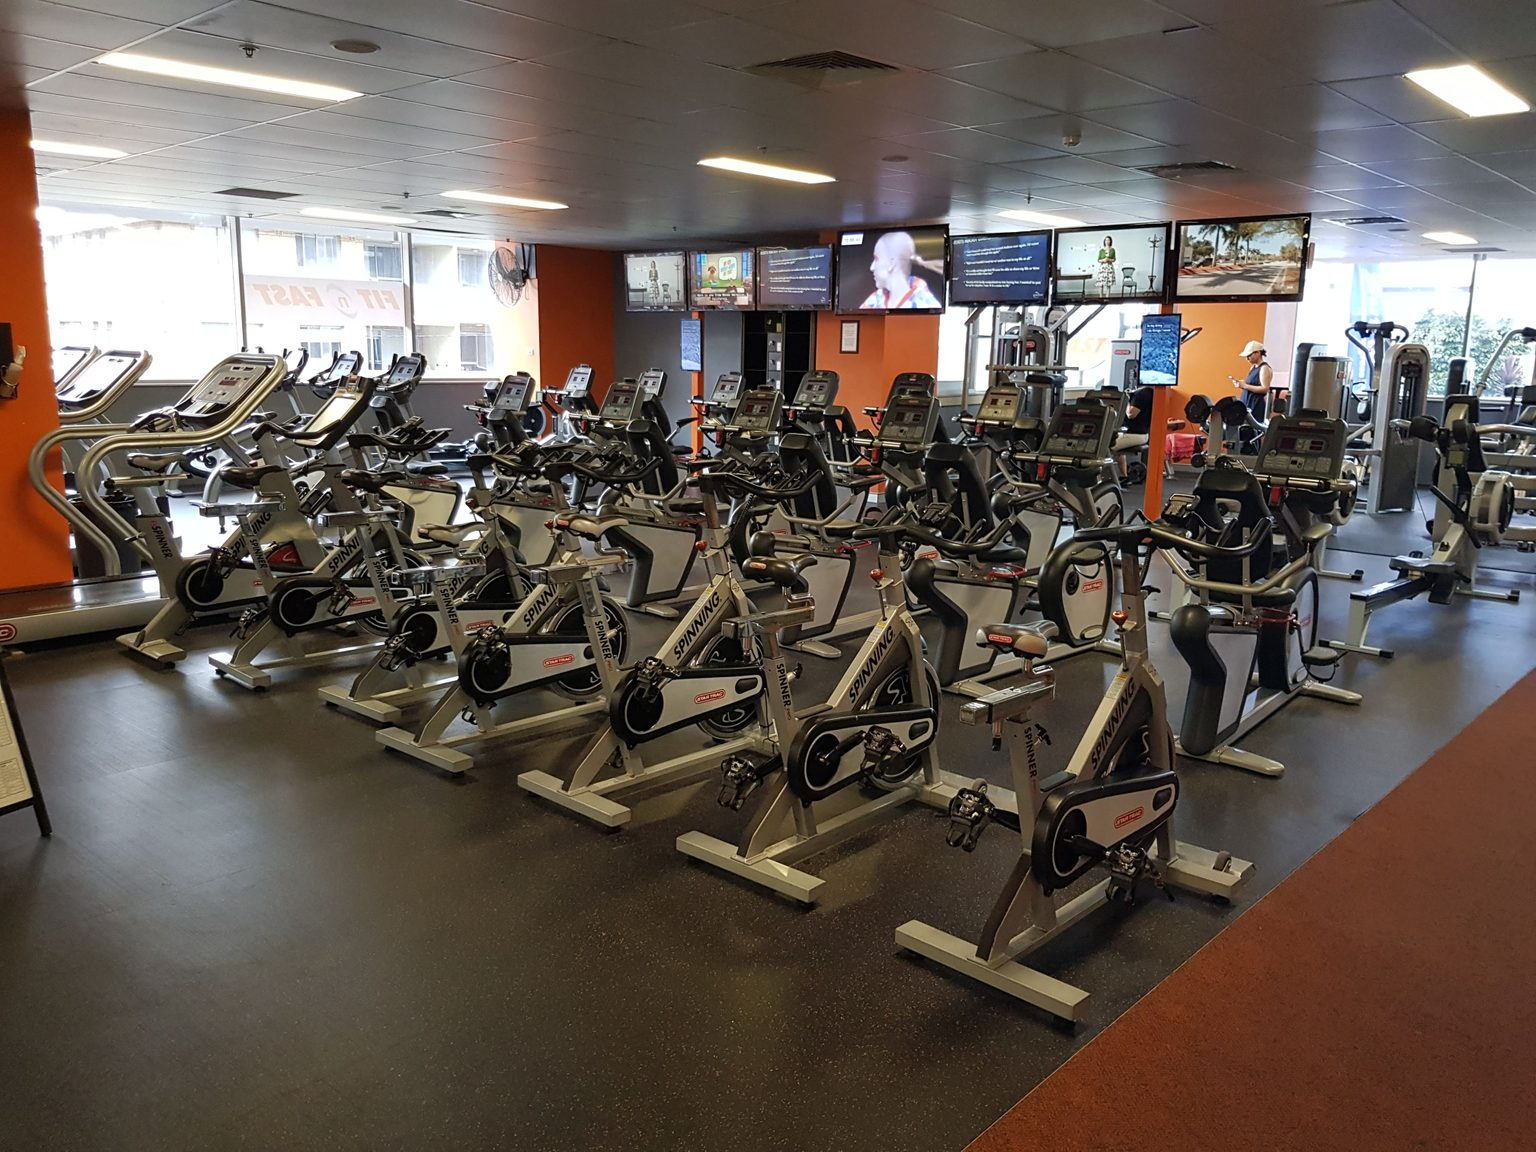 Photo from Fit n Fast - Burwood